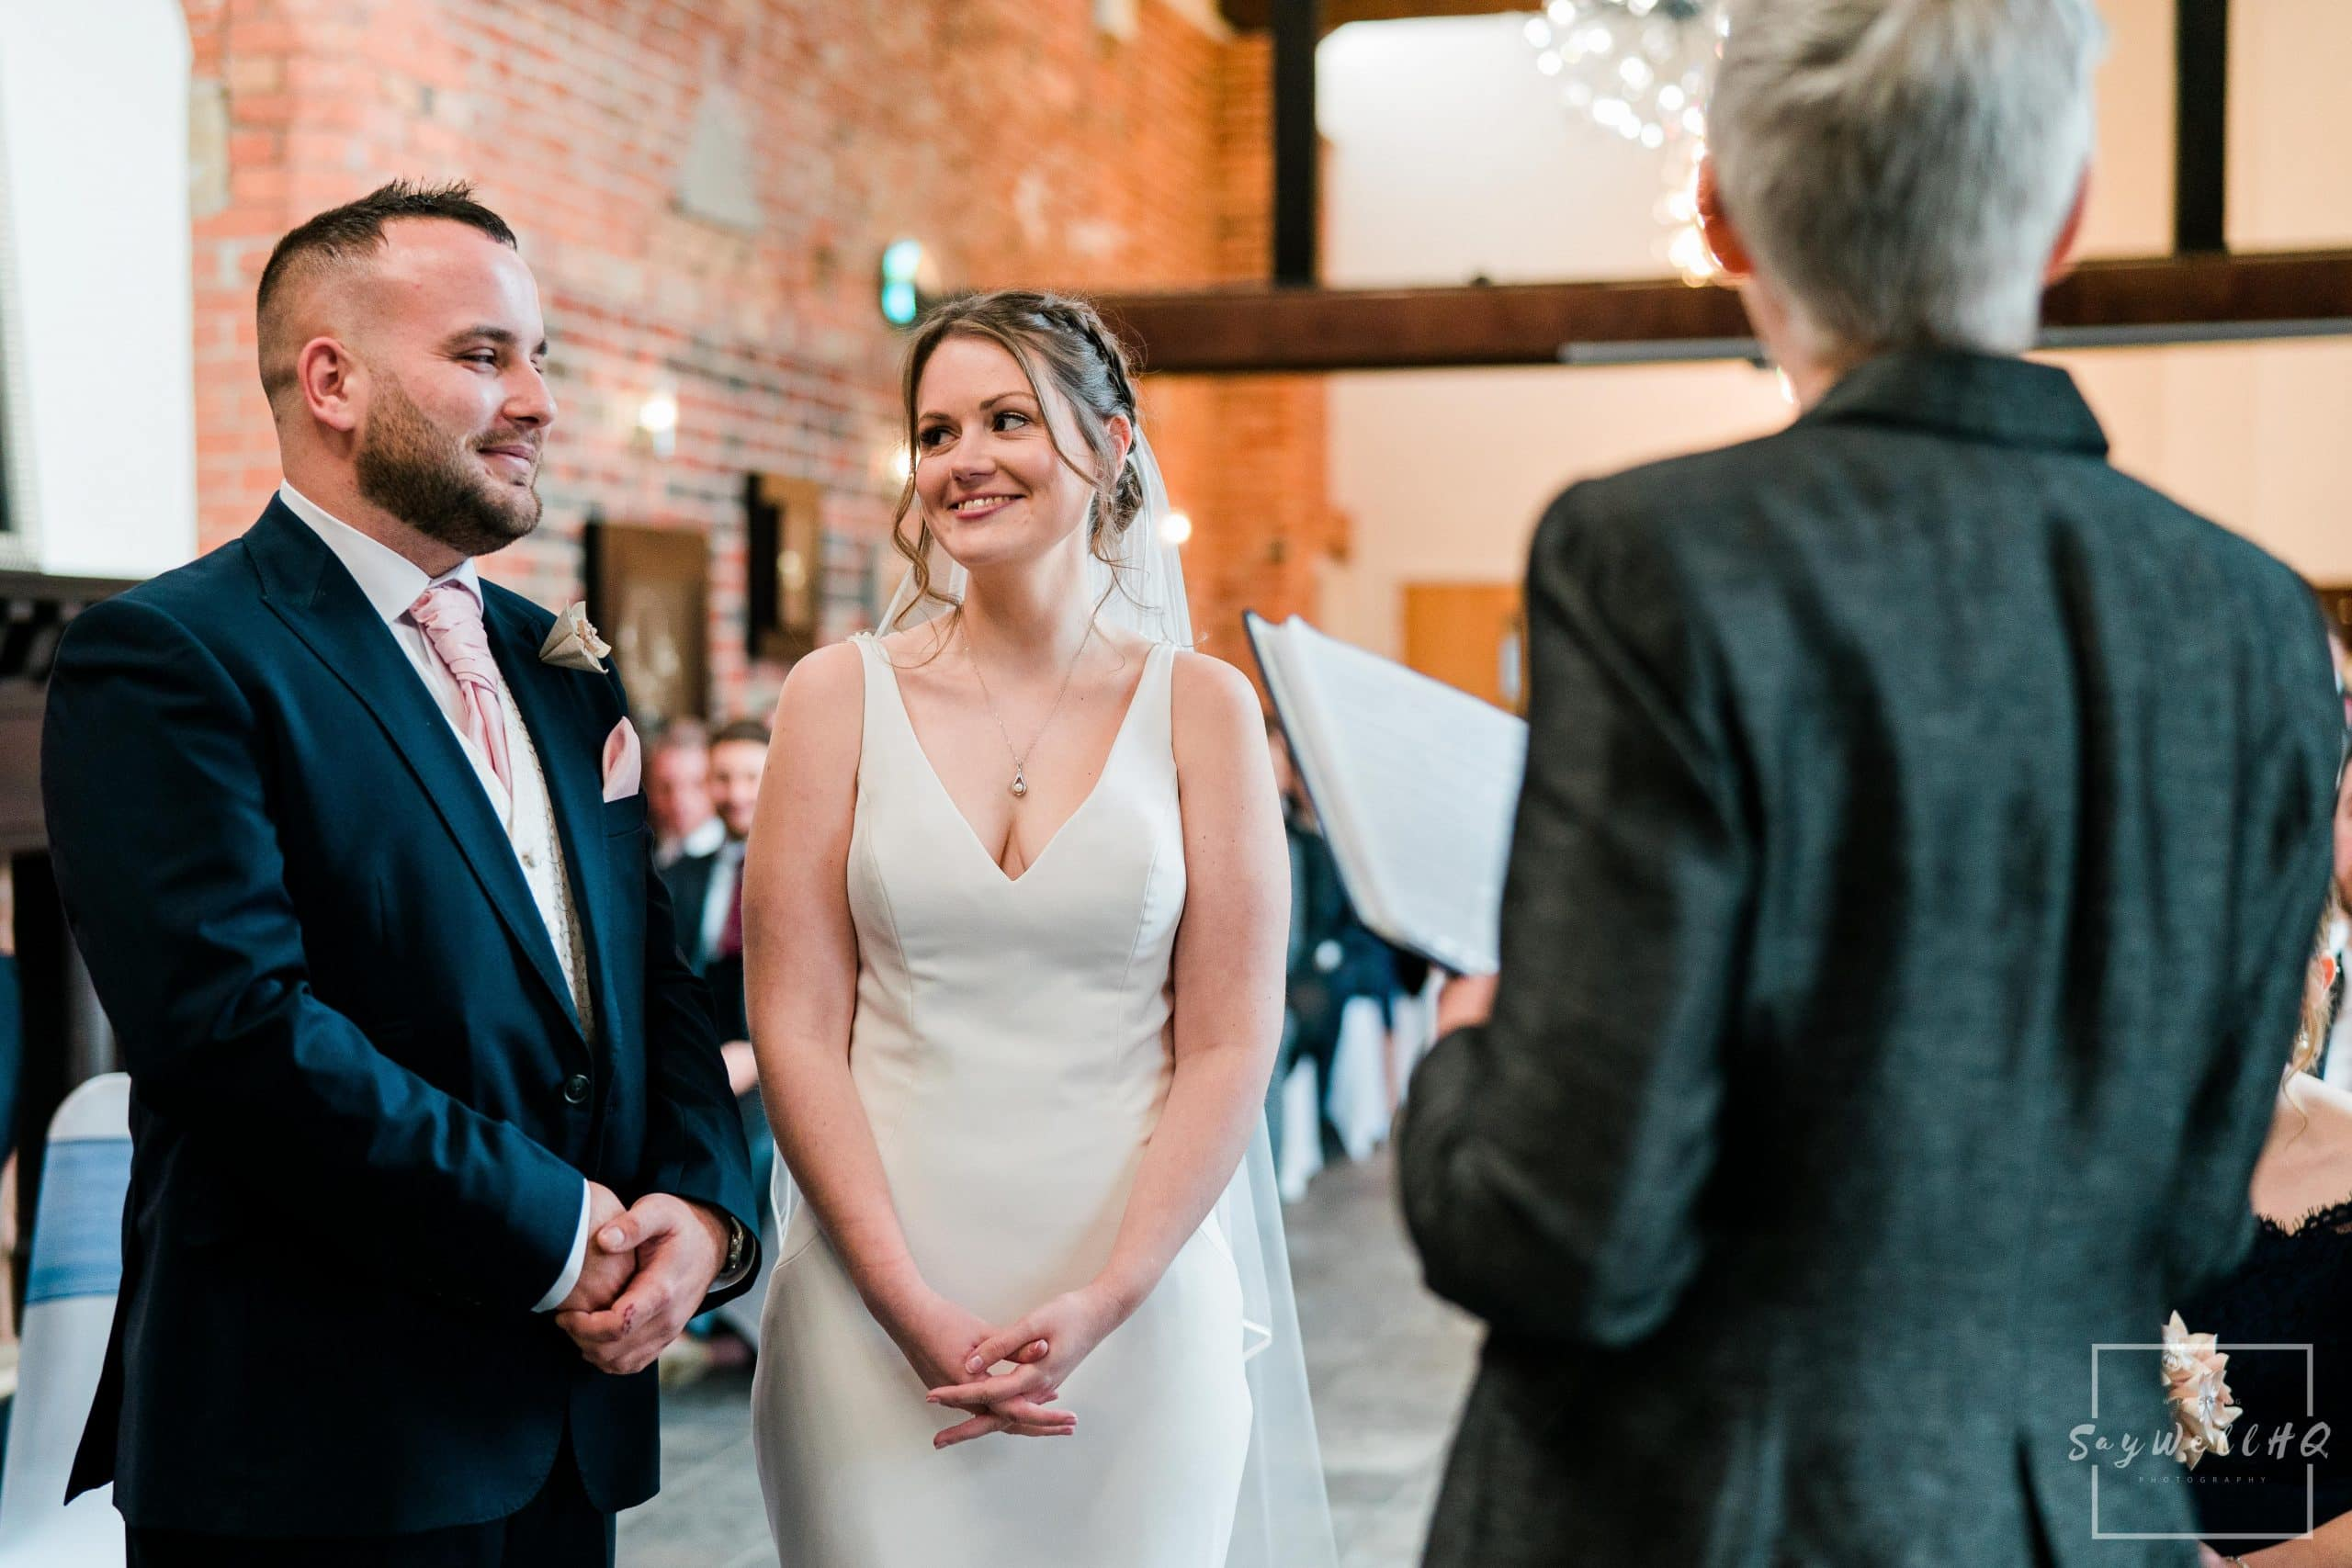 Bride and groom looking at each other during their wedding at Goosedale - Wedding Photography by goosedale wedding photographer Andy Saywell of SaywellHQ